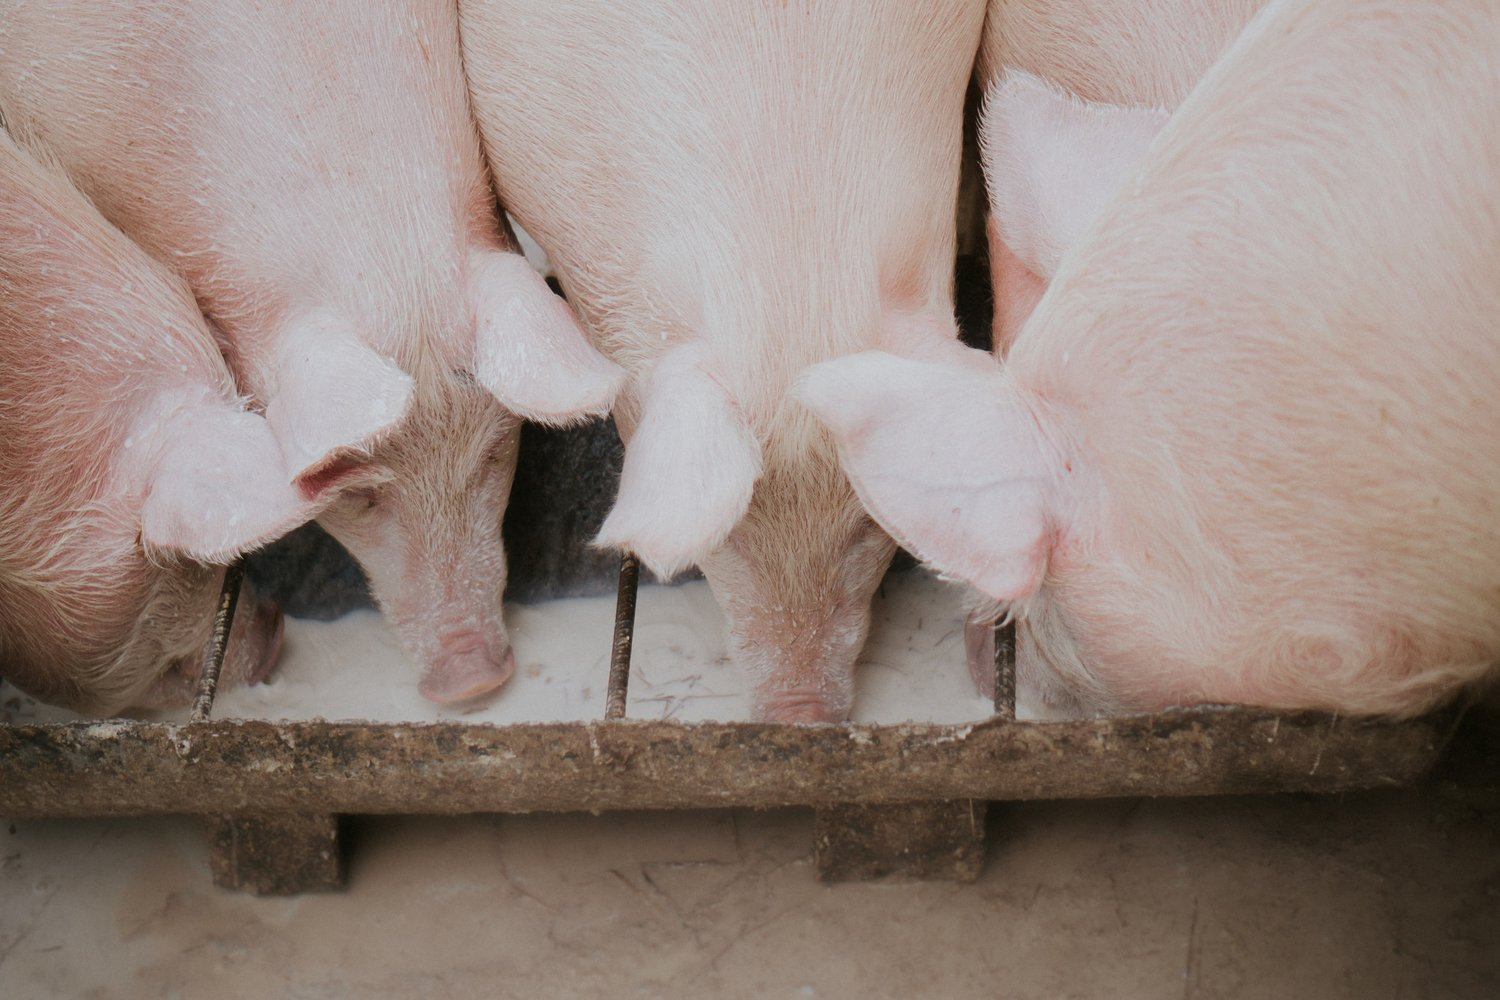 Studies focus on SARS-CoV-2 transmission in domestic cats, pigs